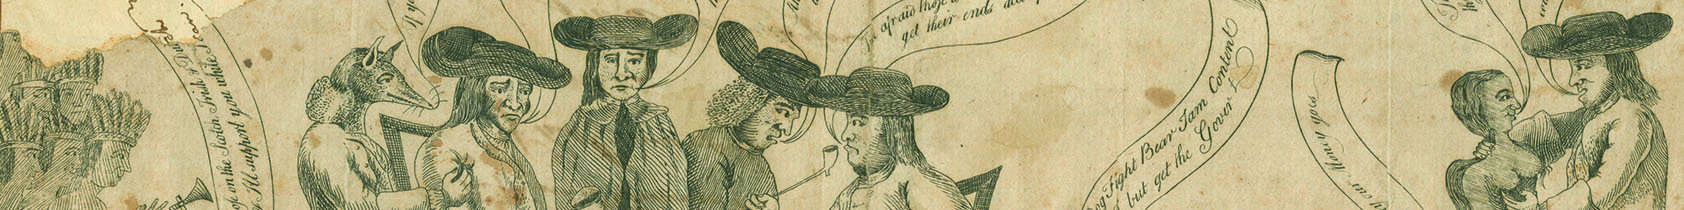 [Franklin and the Quakers [graphic] / James Claypoole?].